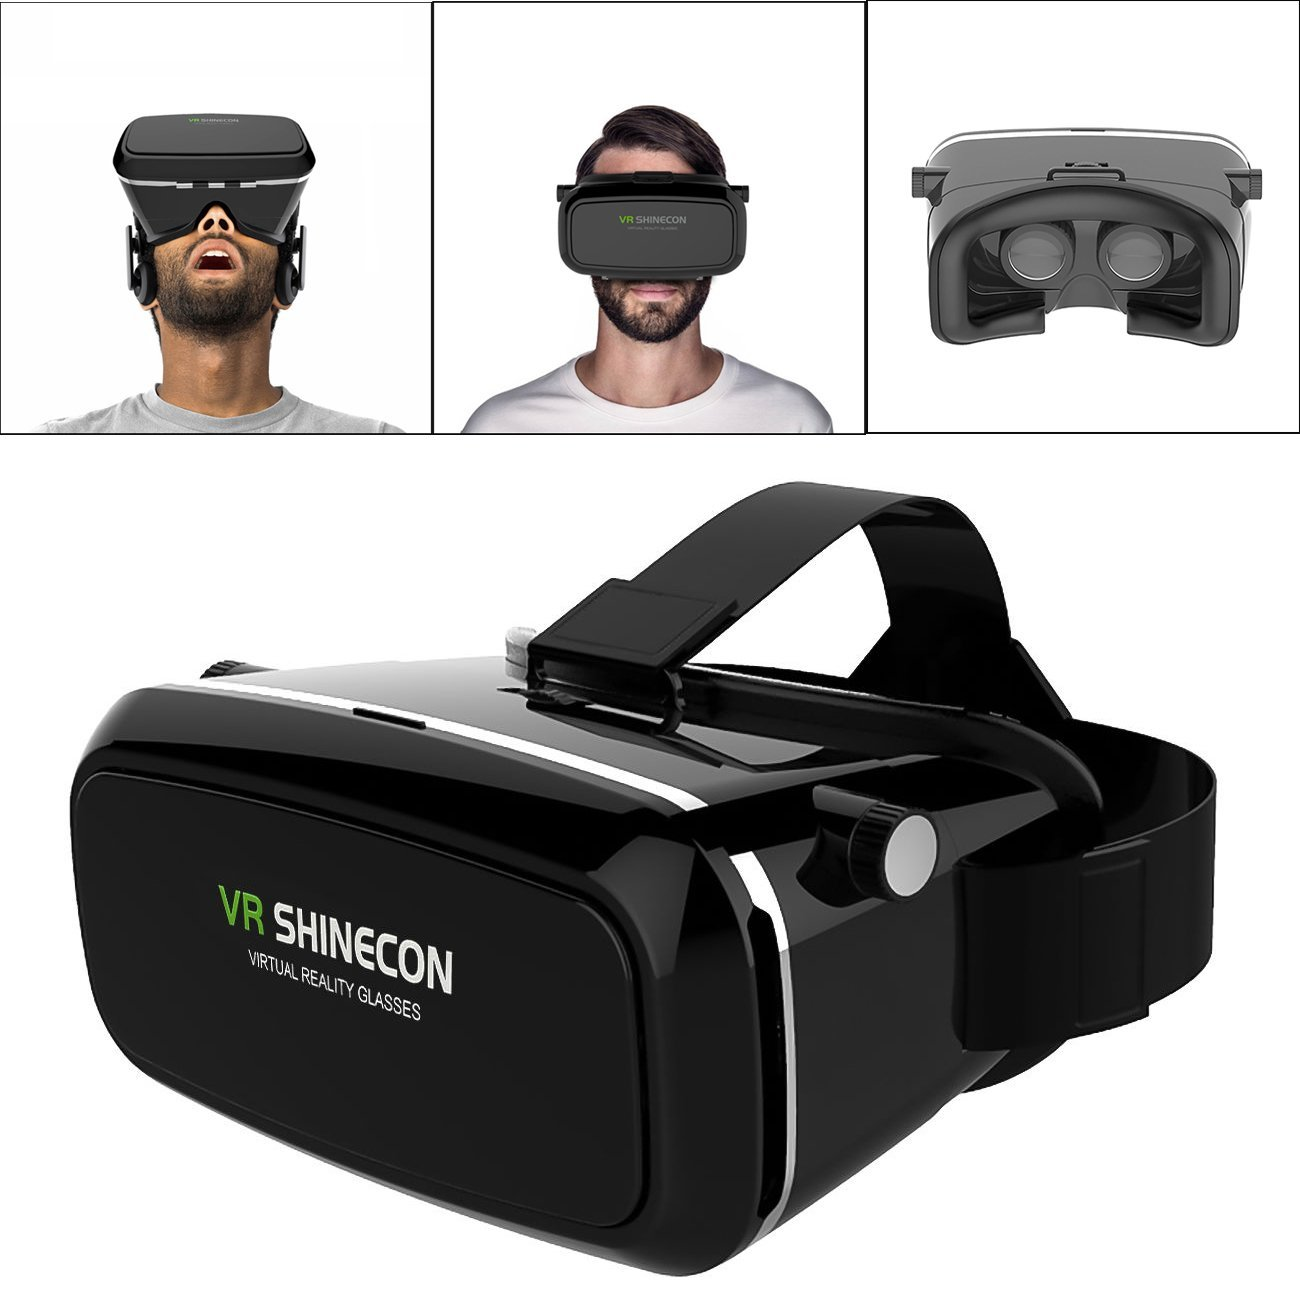 HOT SHINECON Virtual Reality Immersive Glasses Headset for 3D Videos Movies Games Compatible with Most 3